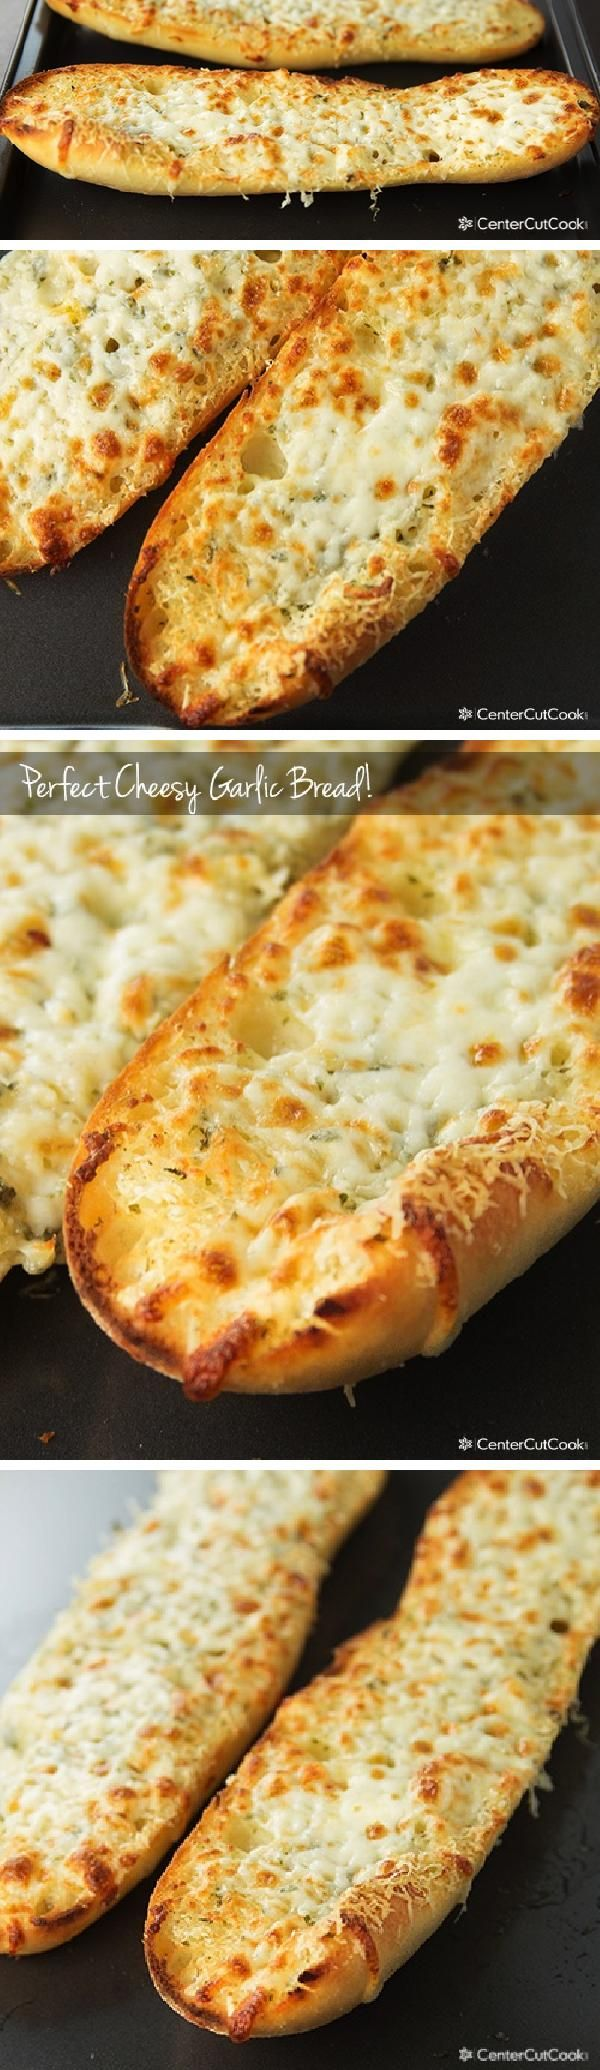 how to cook garlic bread